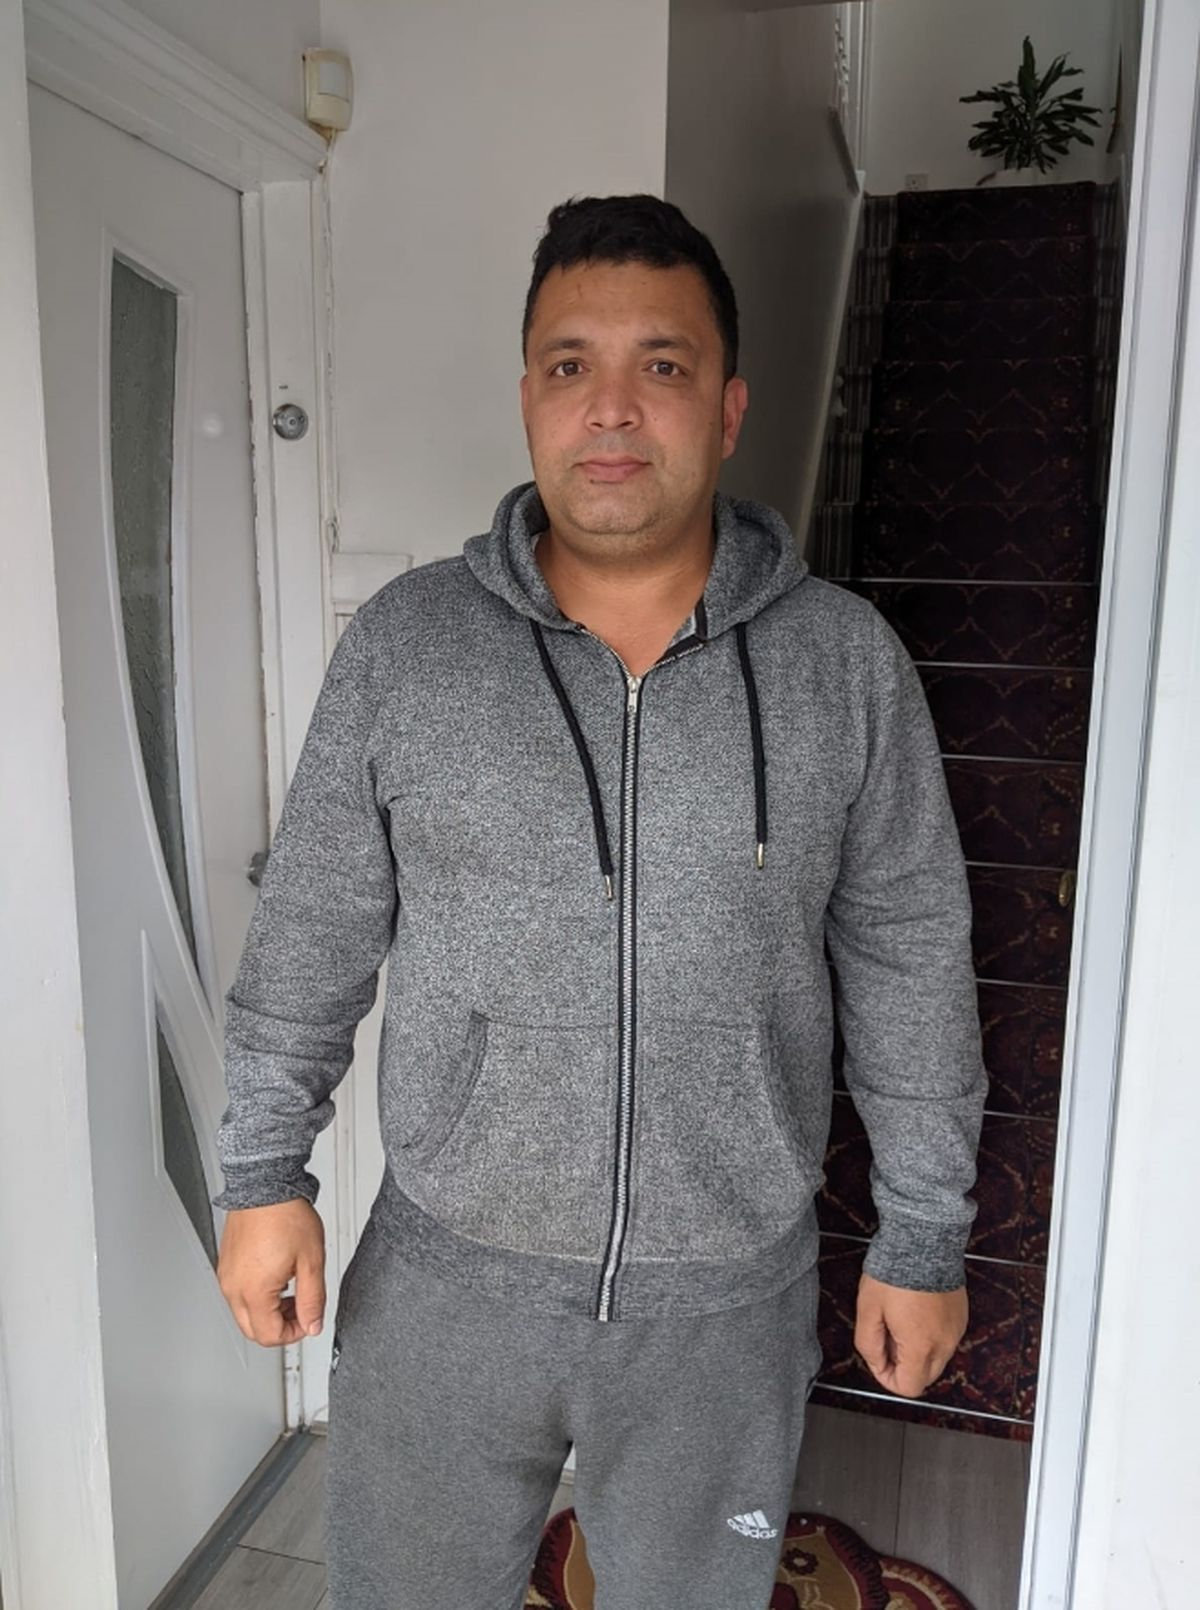 Ashmetullah Faizy called 999 after spotting the fire from his house across the road